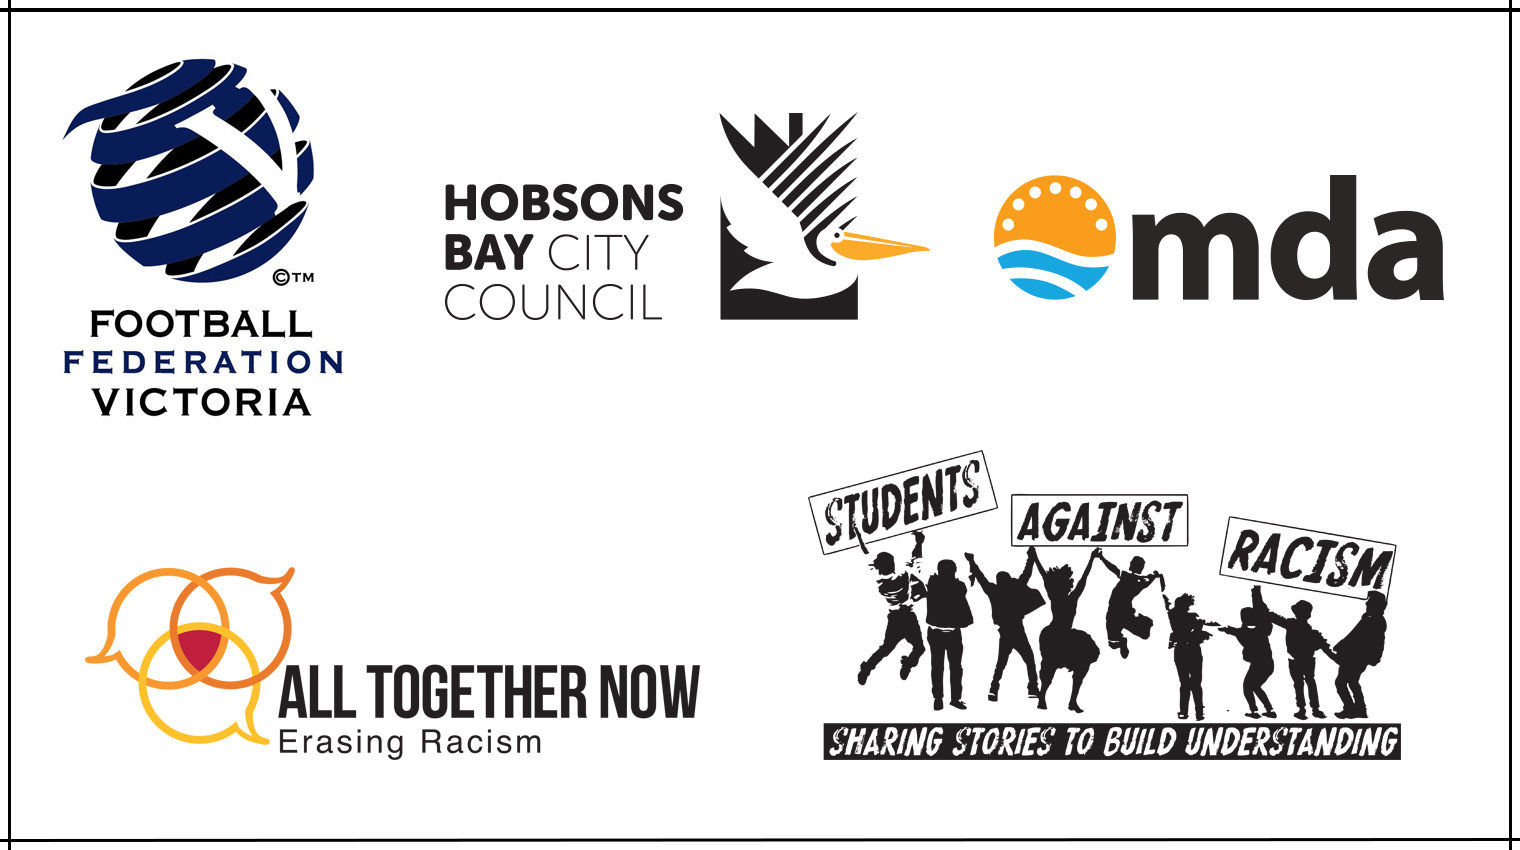 Logos of the 5 RISWM award finalists: Football Federation Victoria, Multicultural Development Agency, All together Now,  Hobsons Bay City Council and •	Tasmanian Students Against Racism